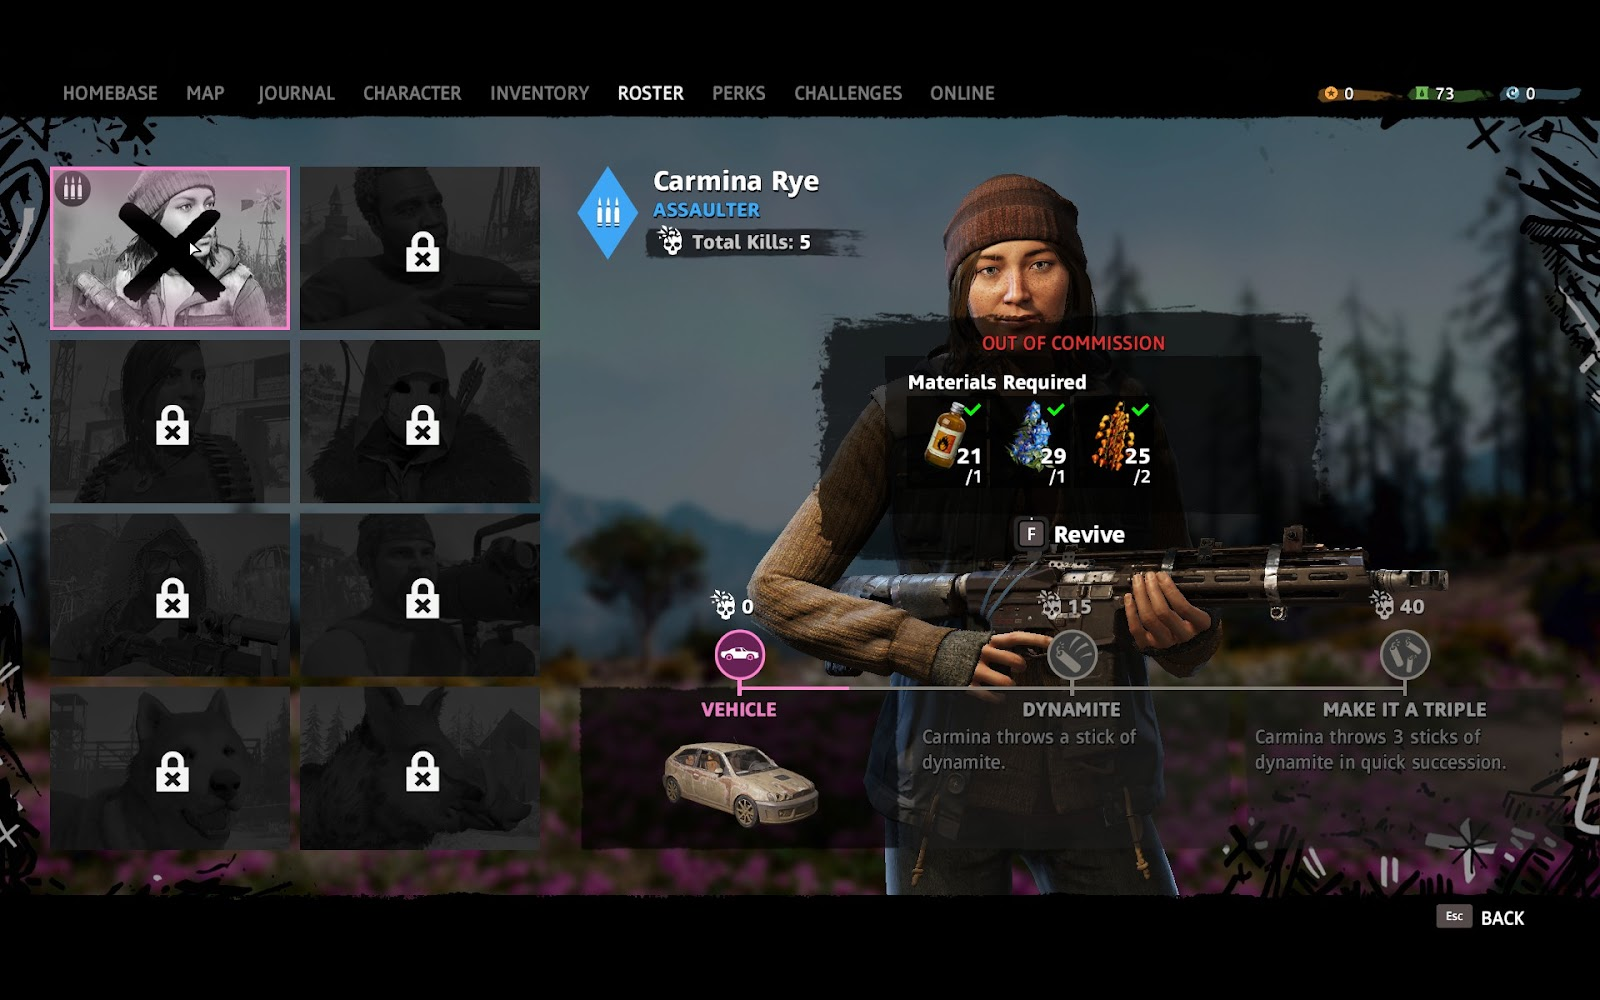 Roster menu where you can revive your companion